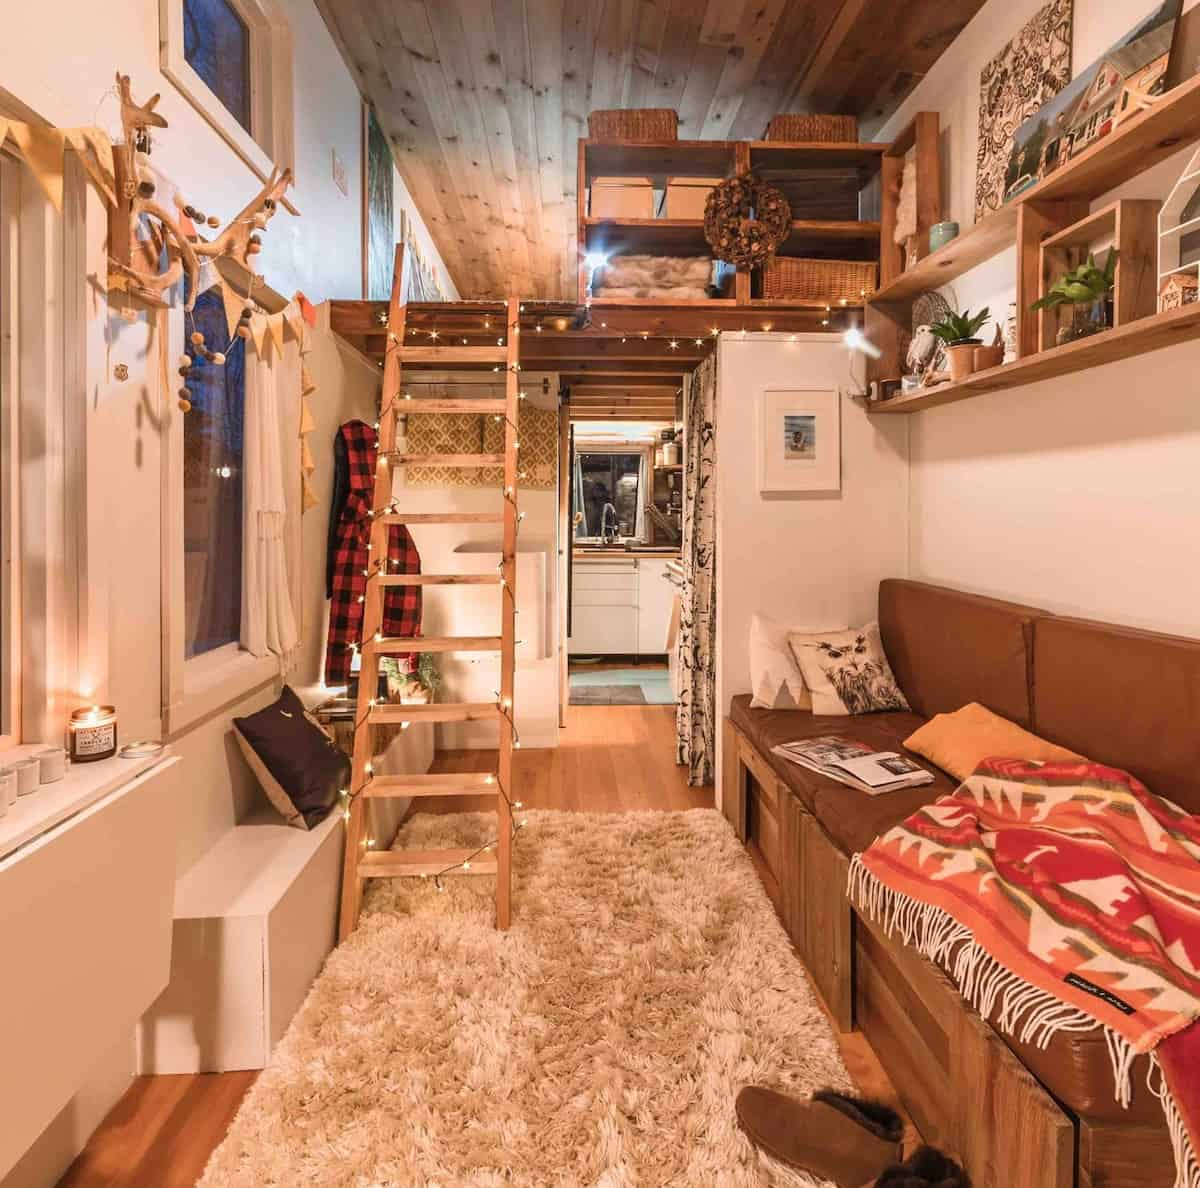 the micro airbnb rental